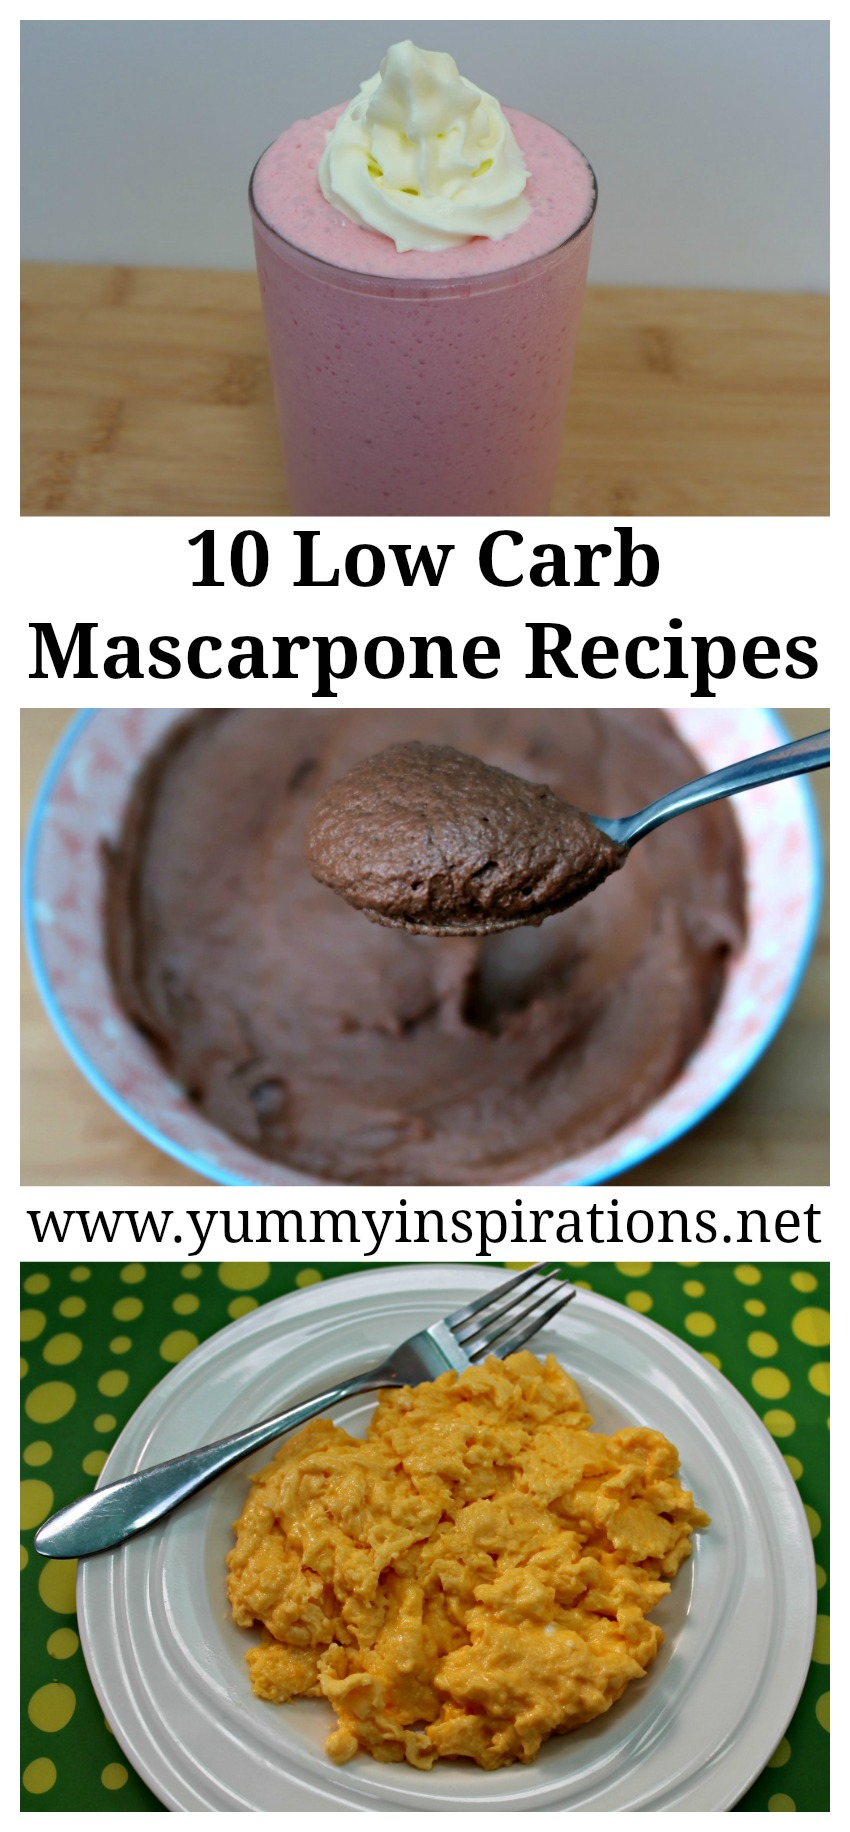 10 Low Carb Mascarpone Recipes - Keto Diet Friendly Ways To Enjoy Mascarpone Cheese - including sweet desserts and mouth watering savoury recipes.